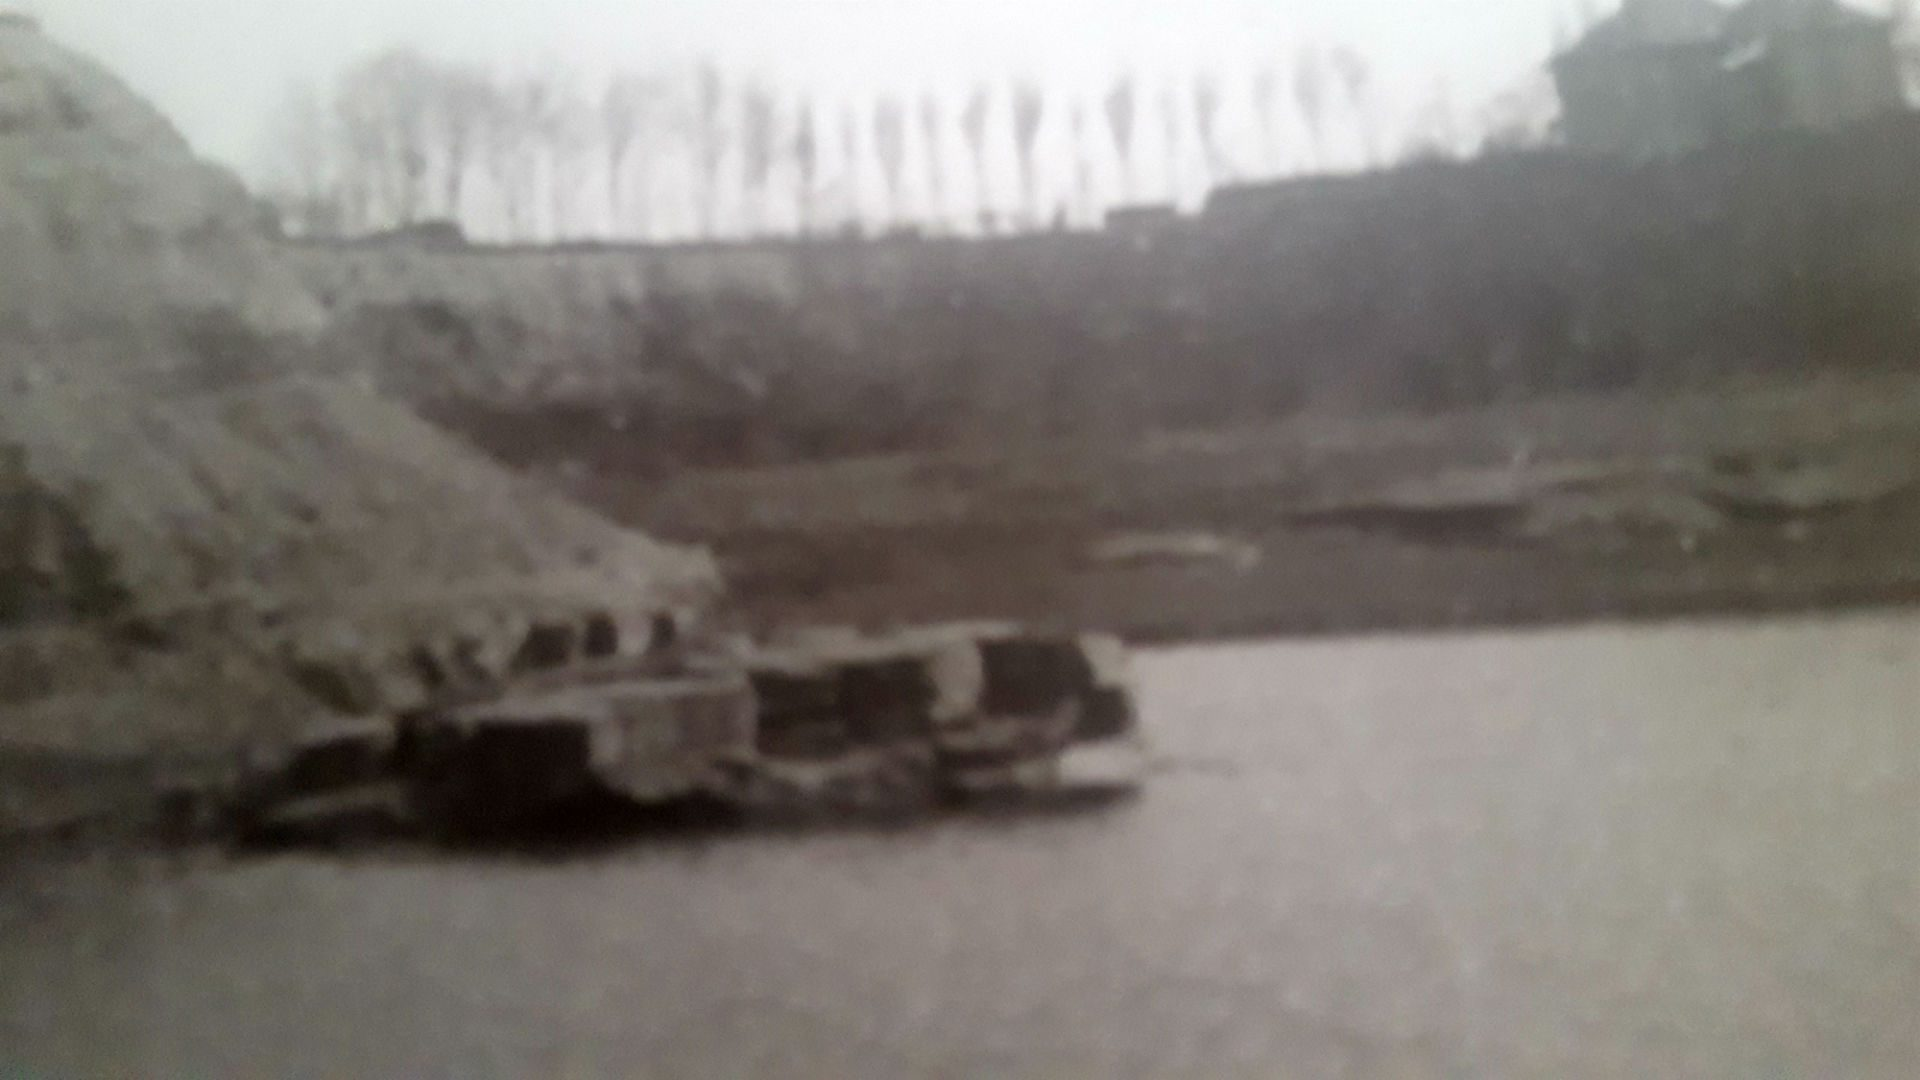 Stairfoot Brickworks flooded quarry